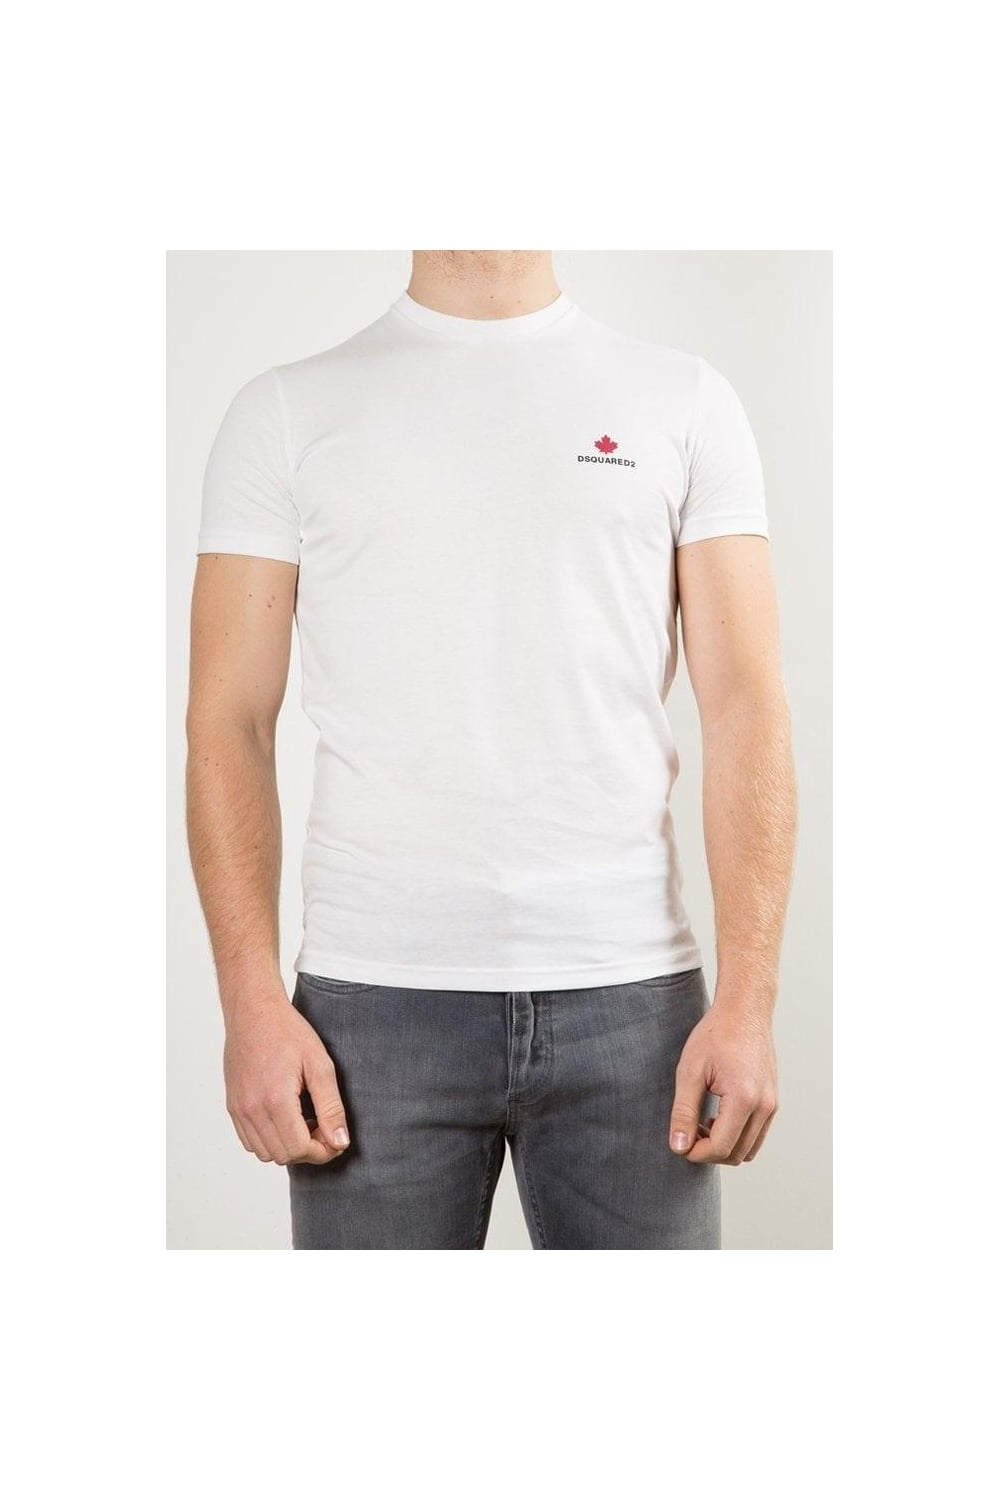 Dsquared2 Maple Leaf Crew Neck T Shirt White Intro